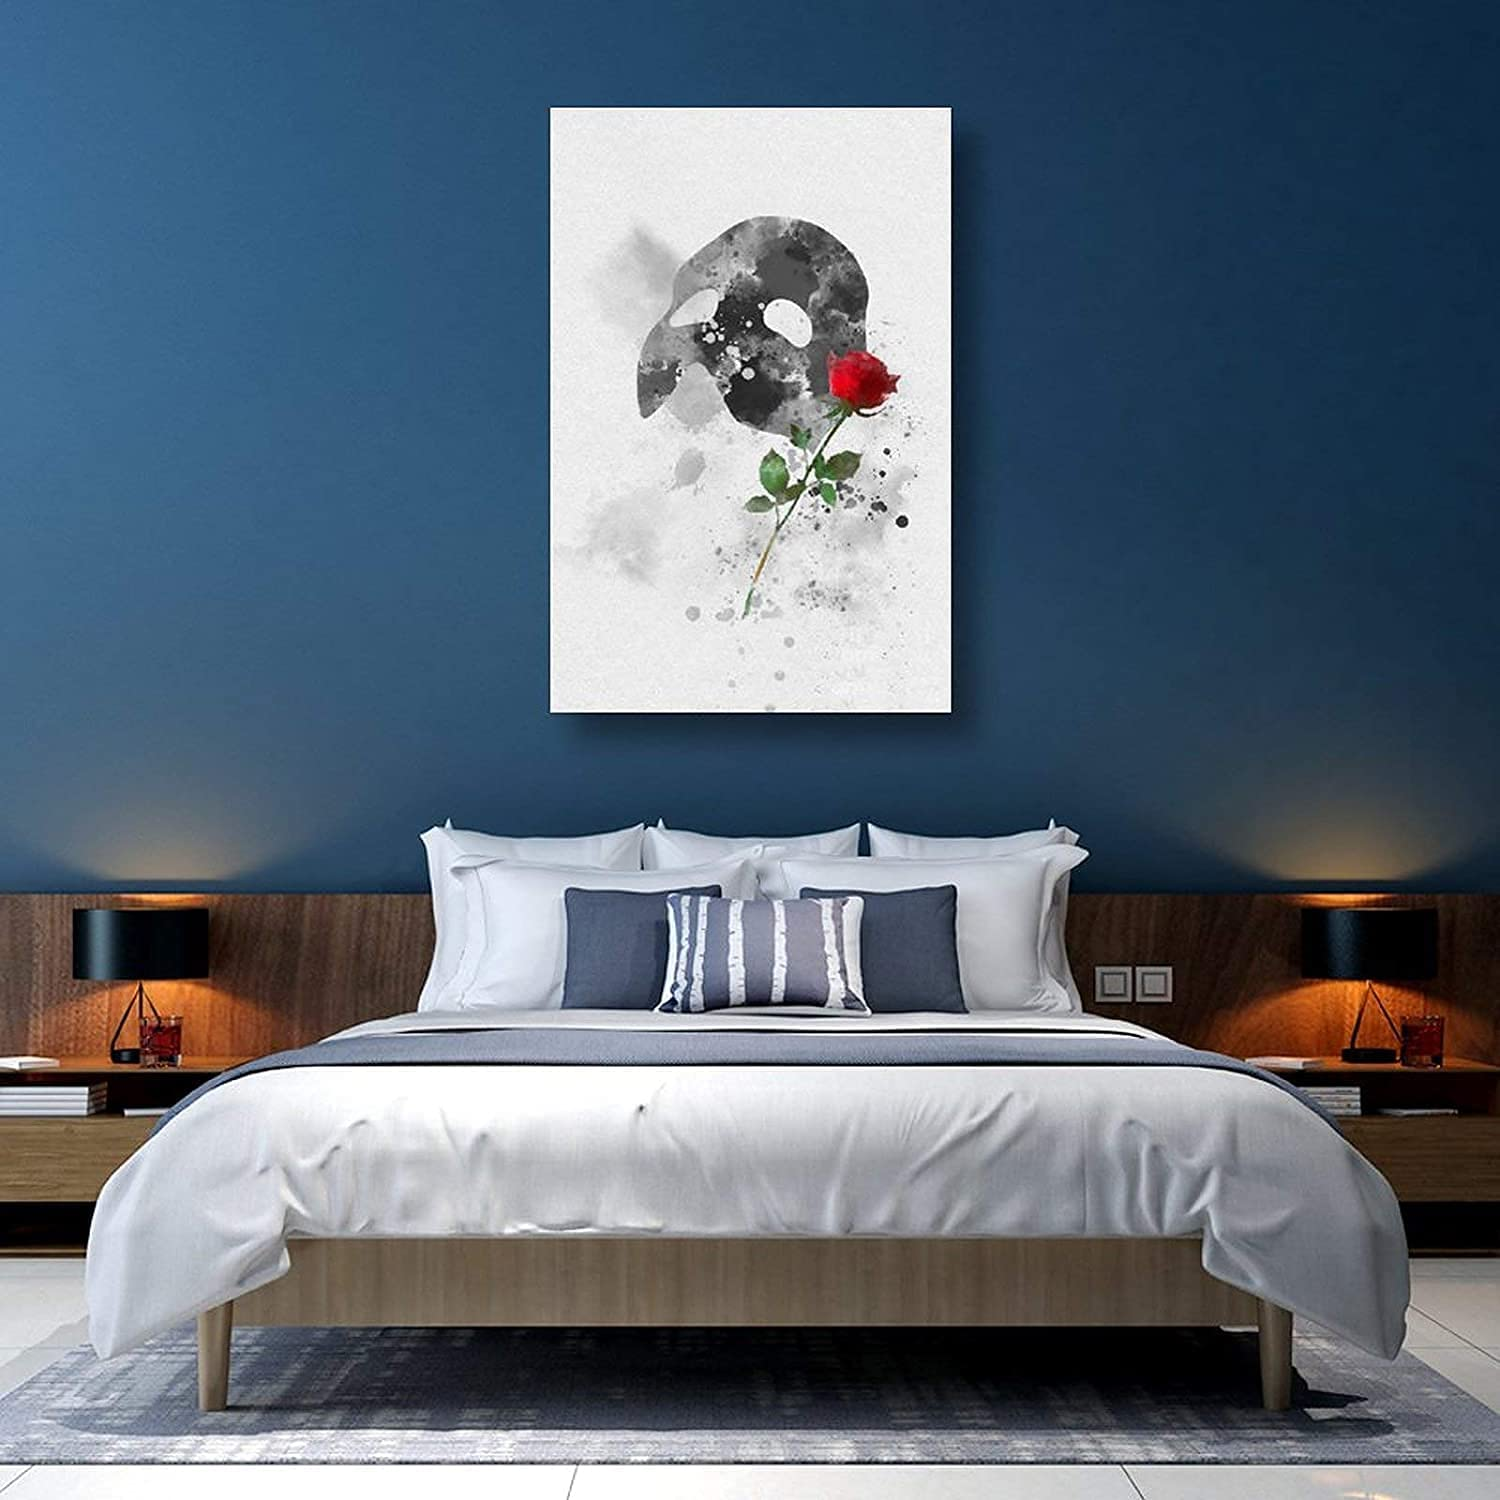 Phantom of The Opera Wall Art Painting Canv Print On Picture 5 ☆ very popular sold out